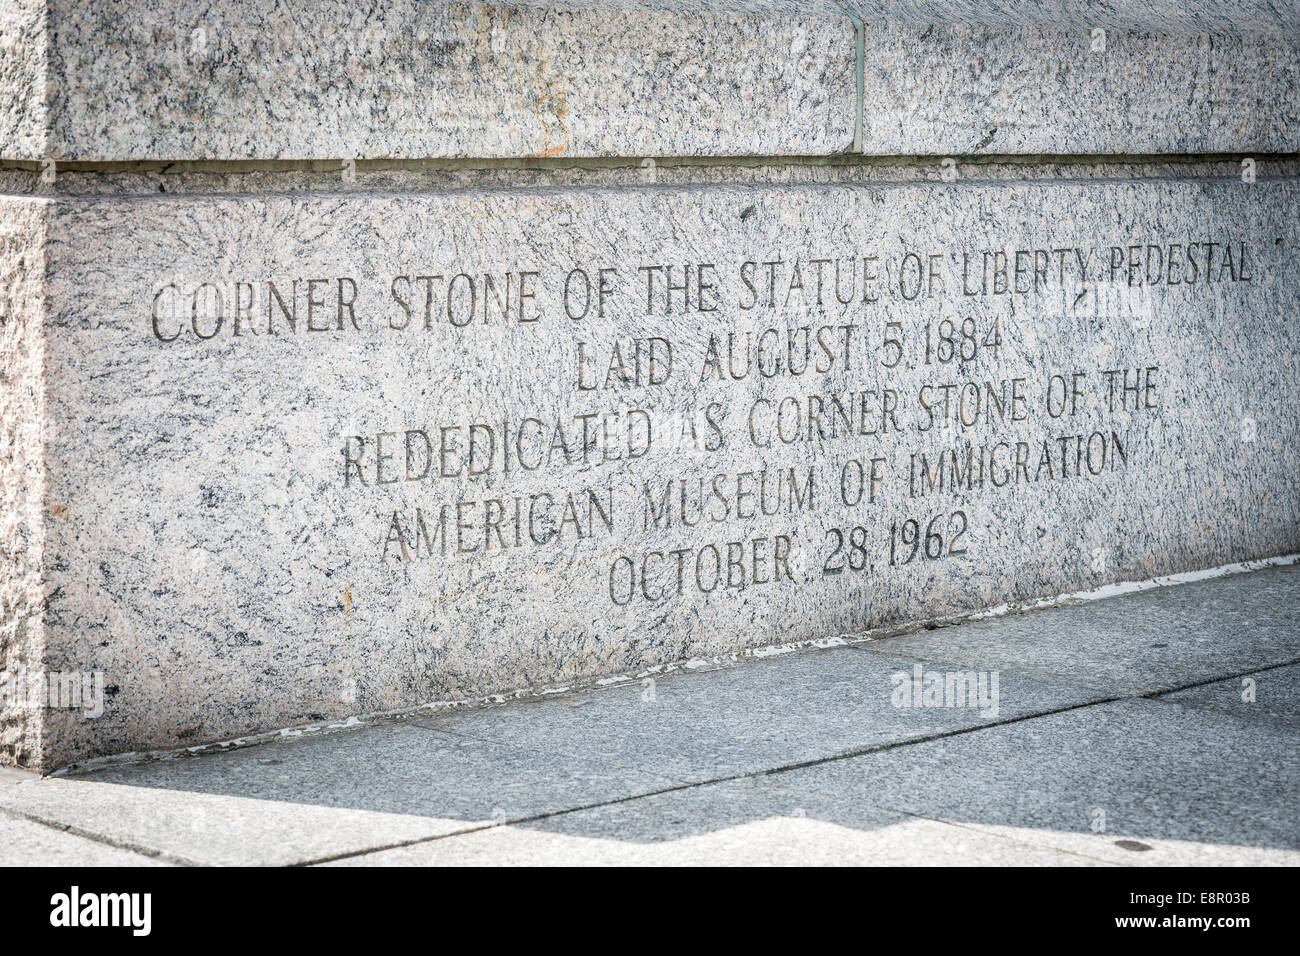 The Corner Stone of the Statue of Liberty Pedestal, laid August 5th 1884 - Liberty Island, New York - USA. - Stock Image